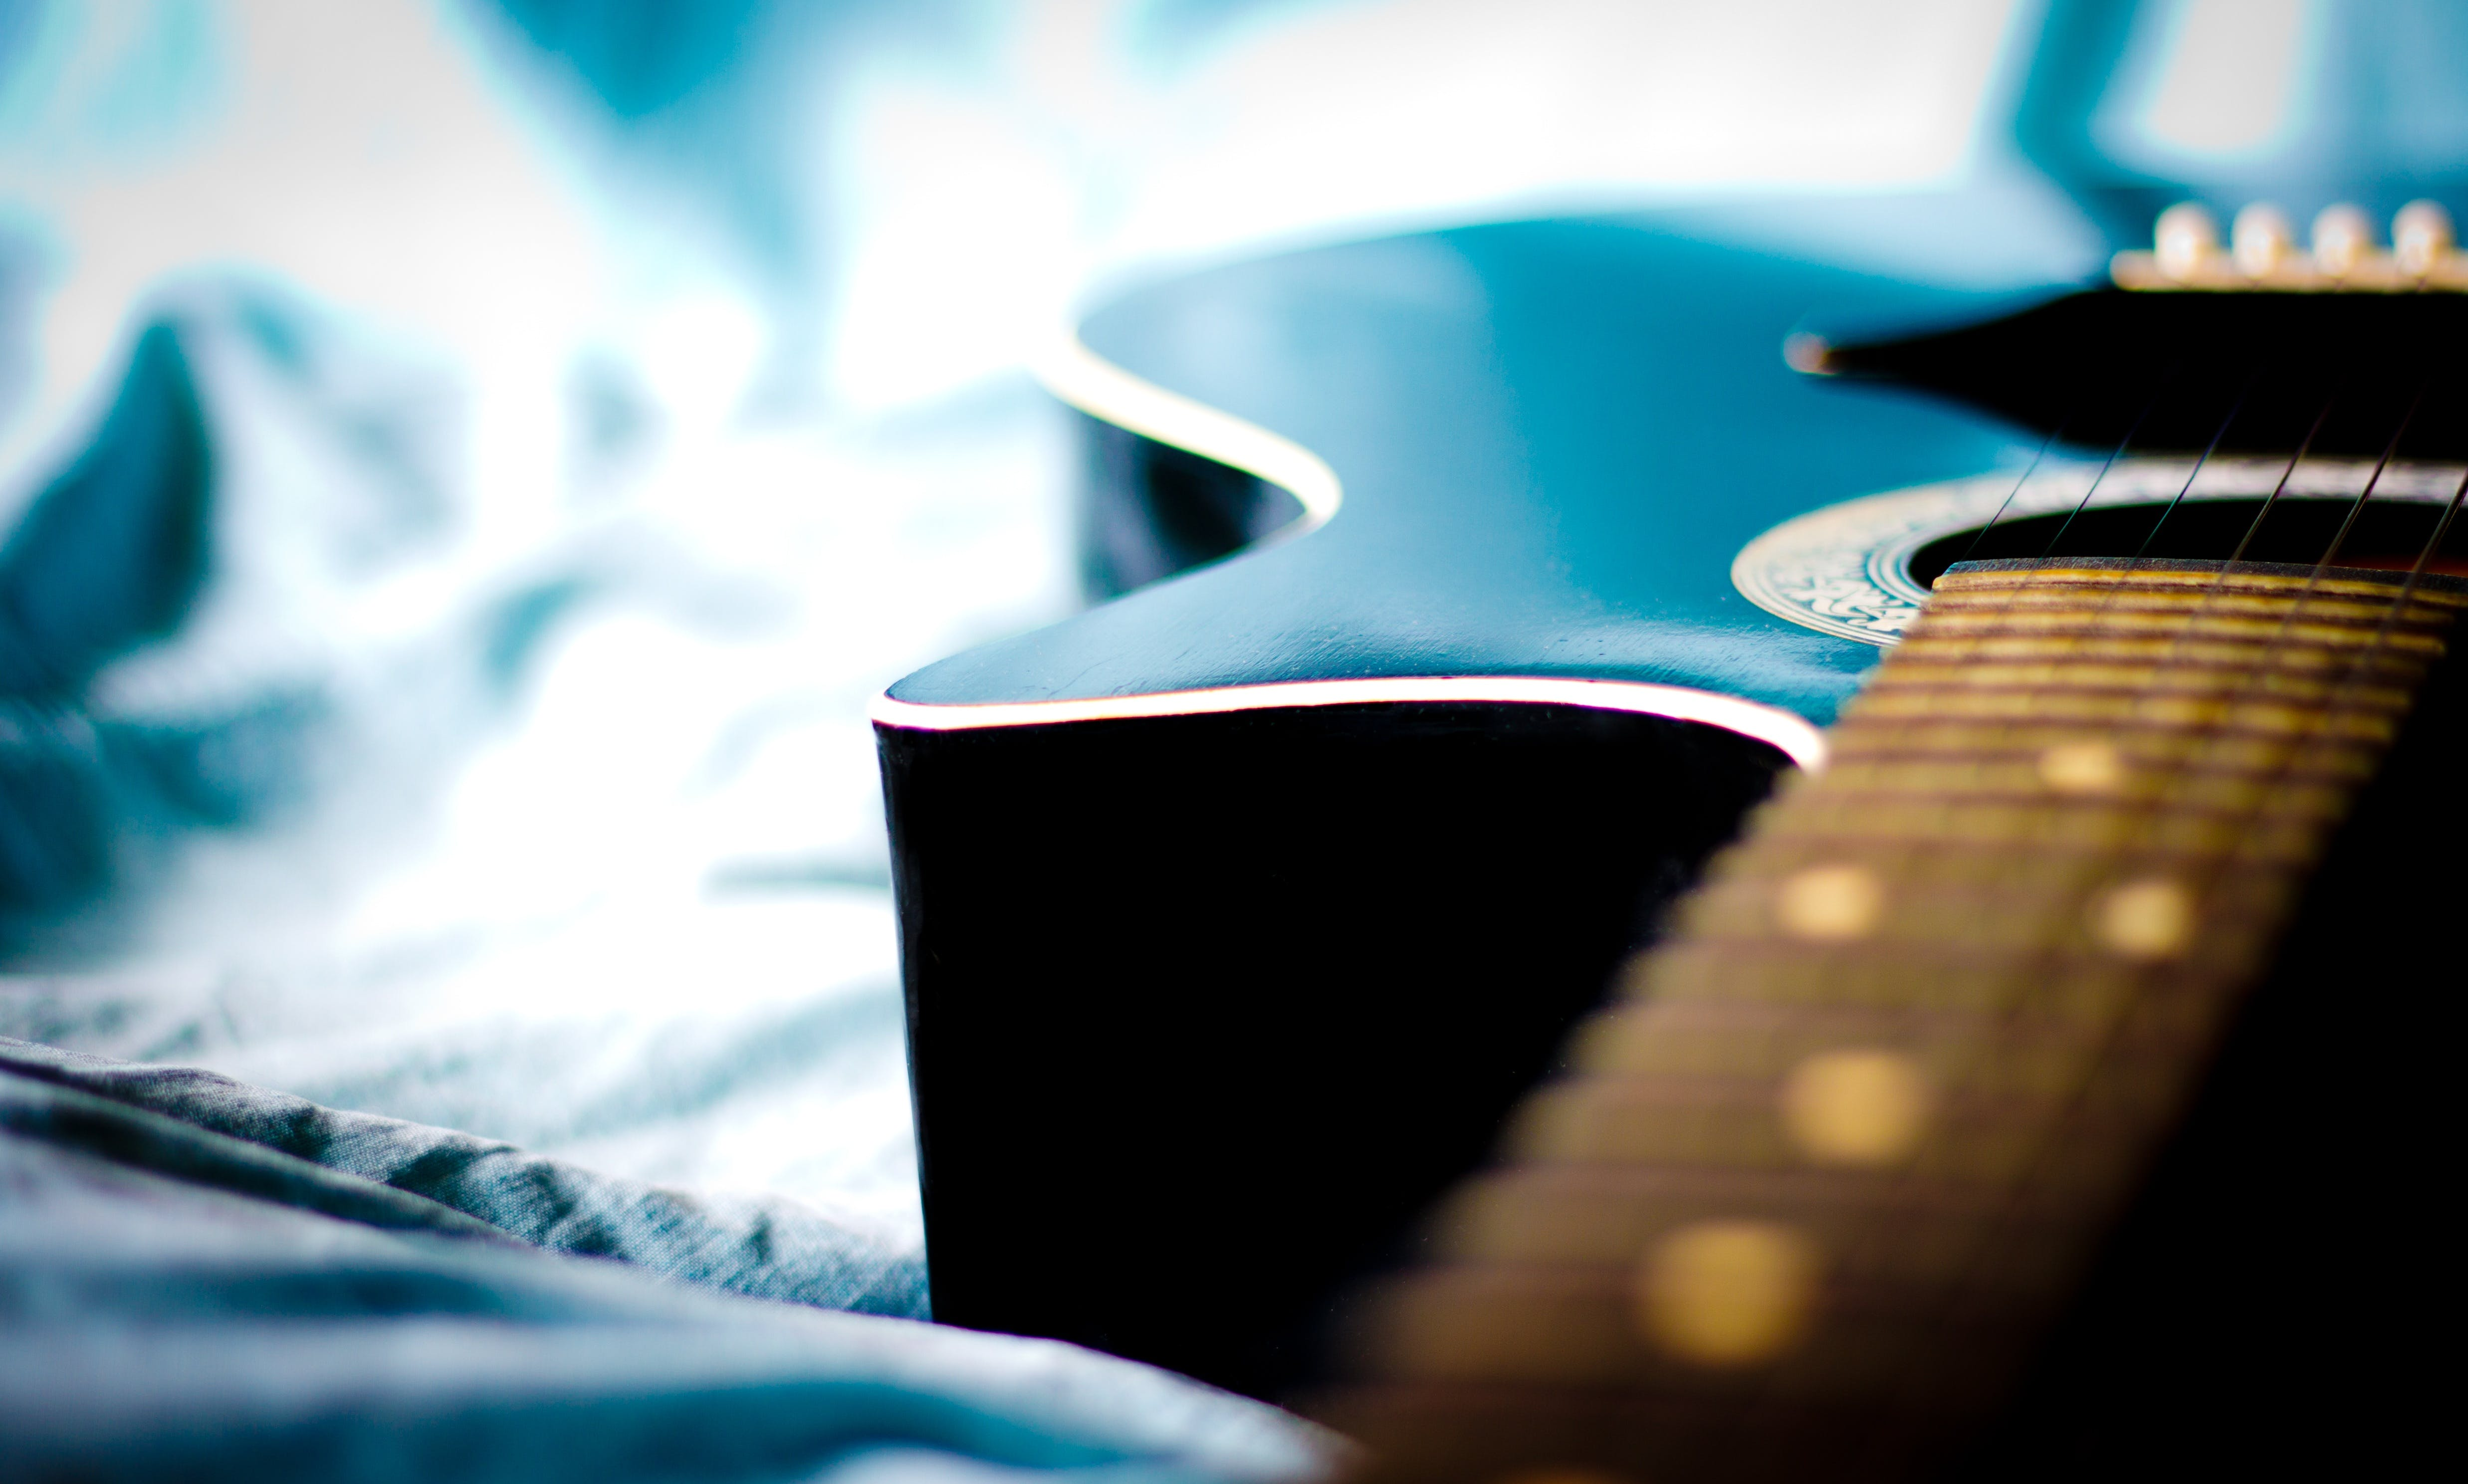 Black Acoustic Guitar in Grey Textile Close Up Photo